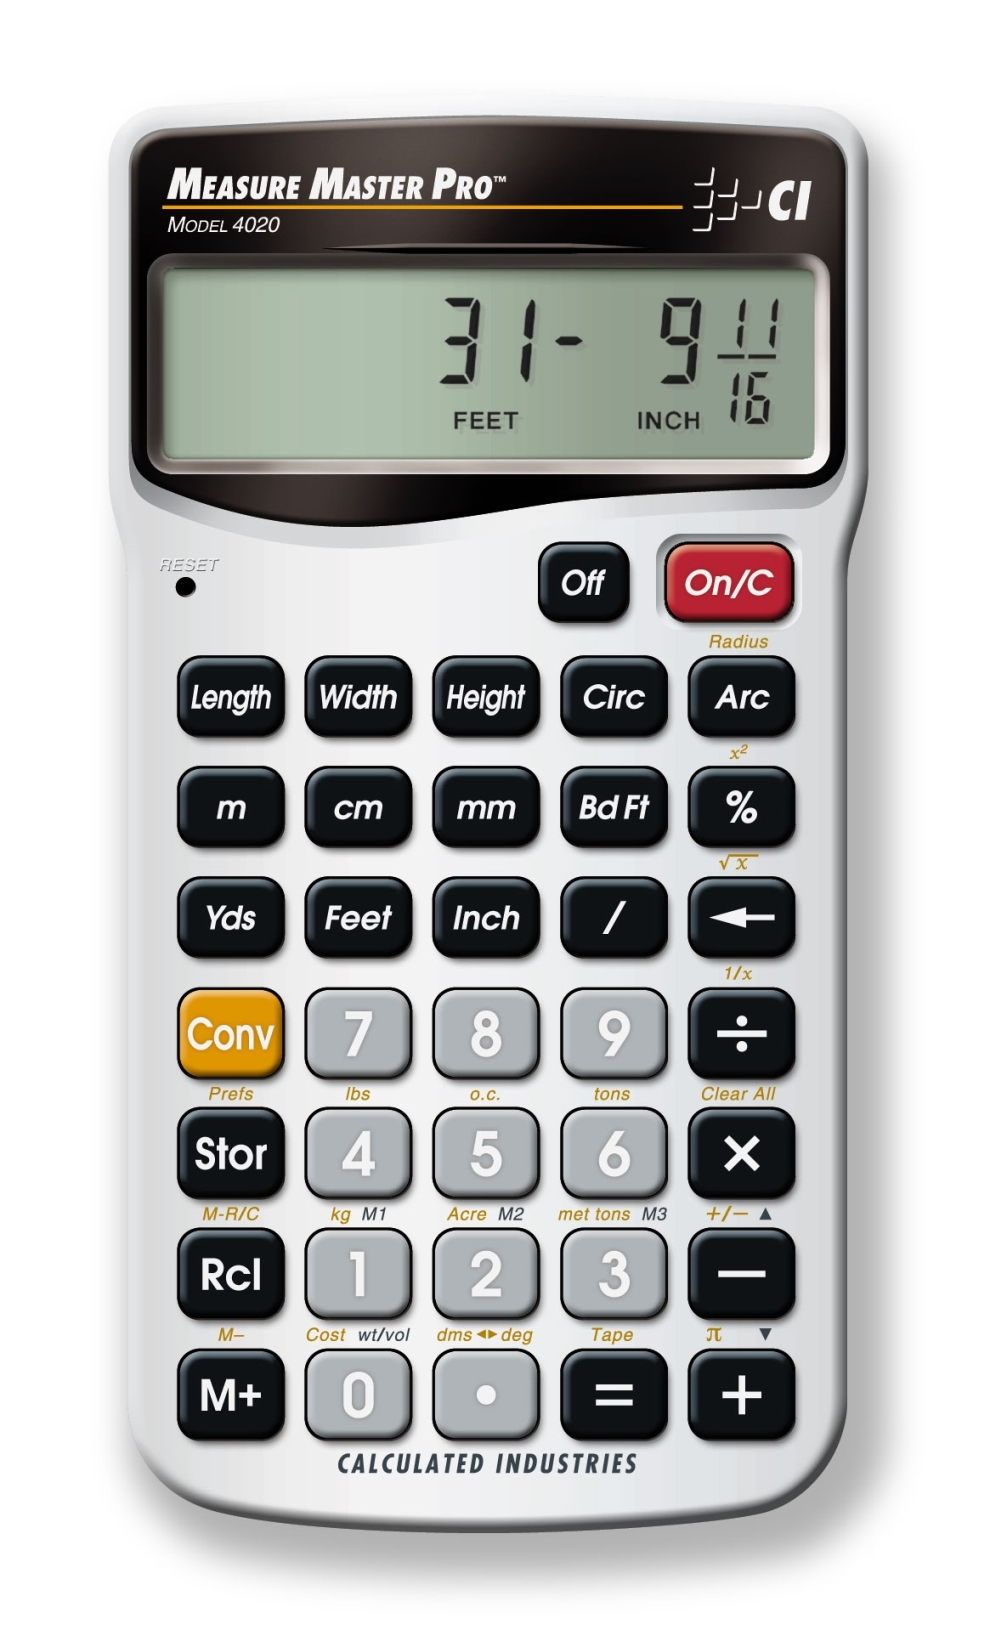 calculated-industries-measure-master-pro-4020-feet-inch-fraction-calculator-for-do-it-yourselfers